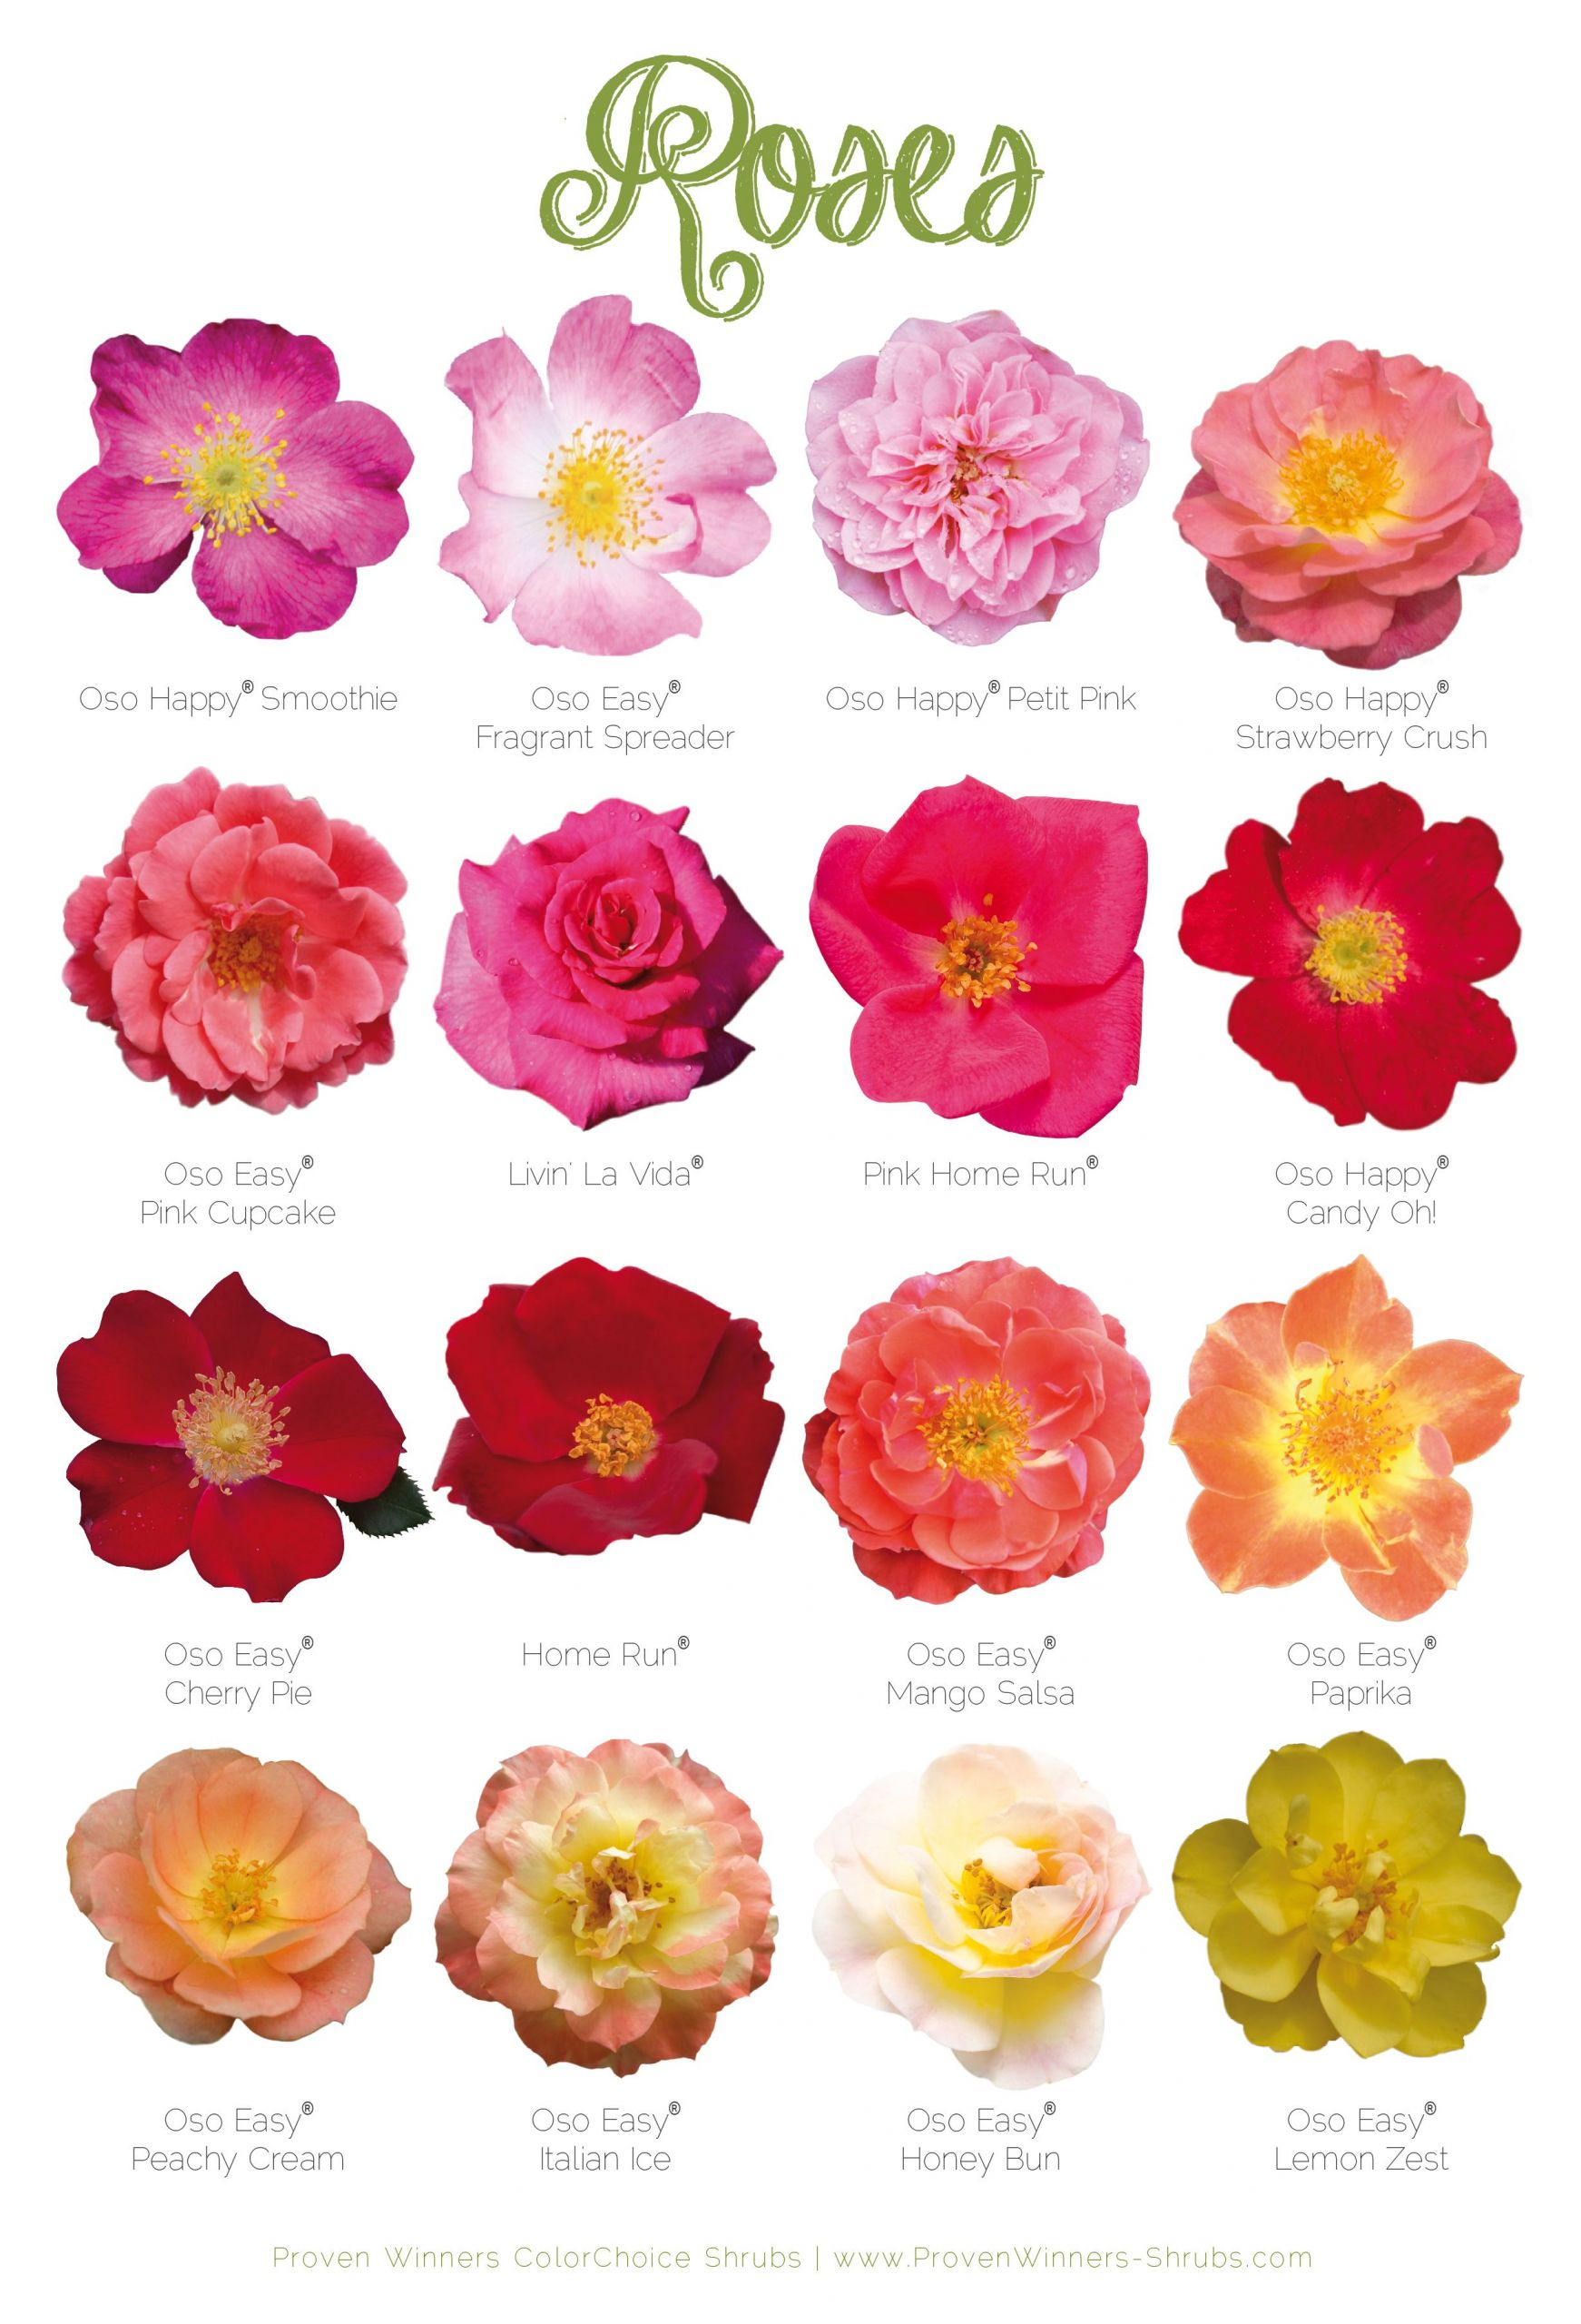 Crapaud Dans Le Jardin Signification Génial 16 Long Blooming Low Maintenance Roses for Your Landscape Of 45 Luxe Crapaud Dans Le Jardin Signification